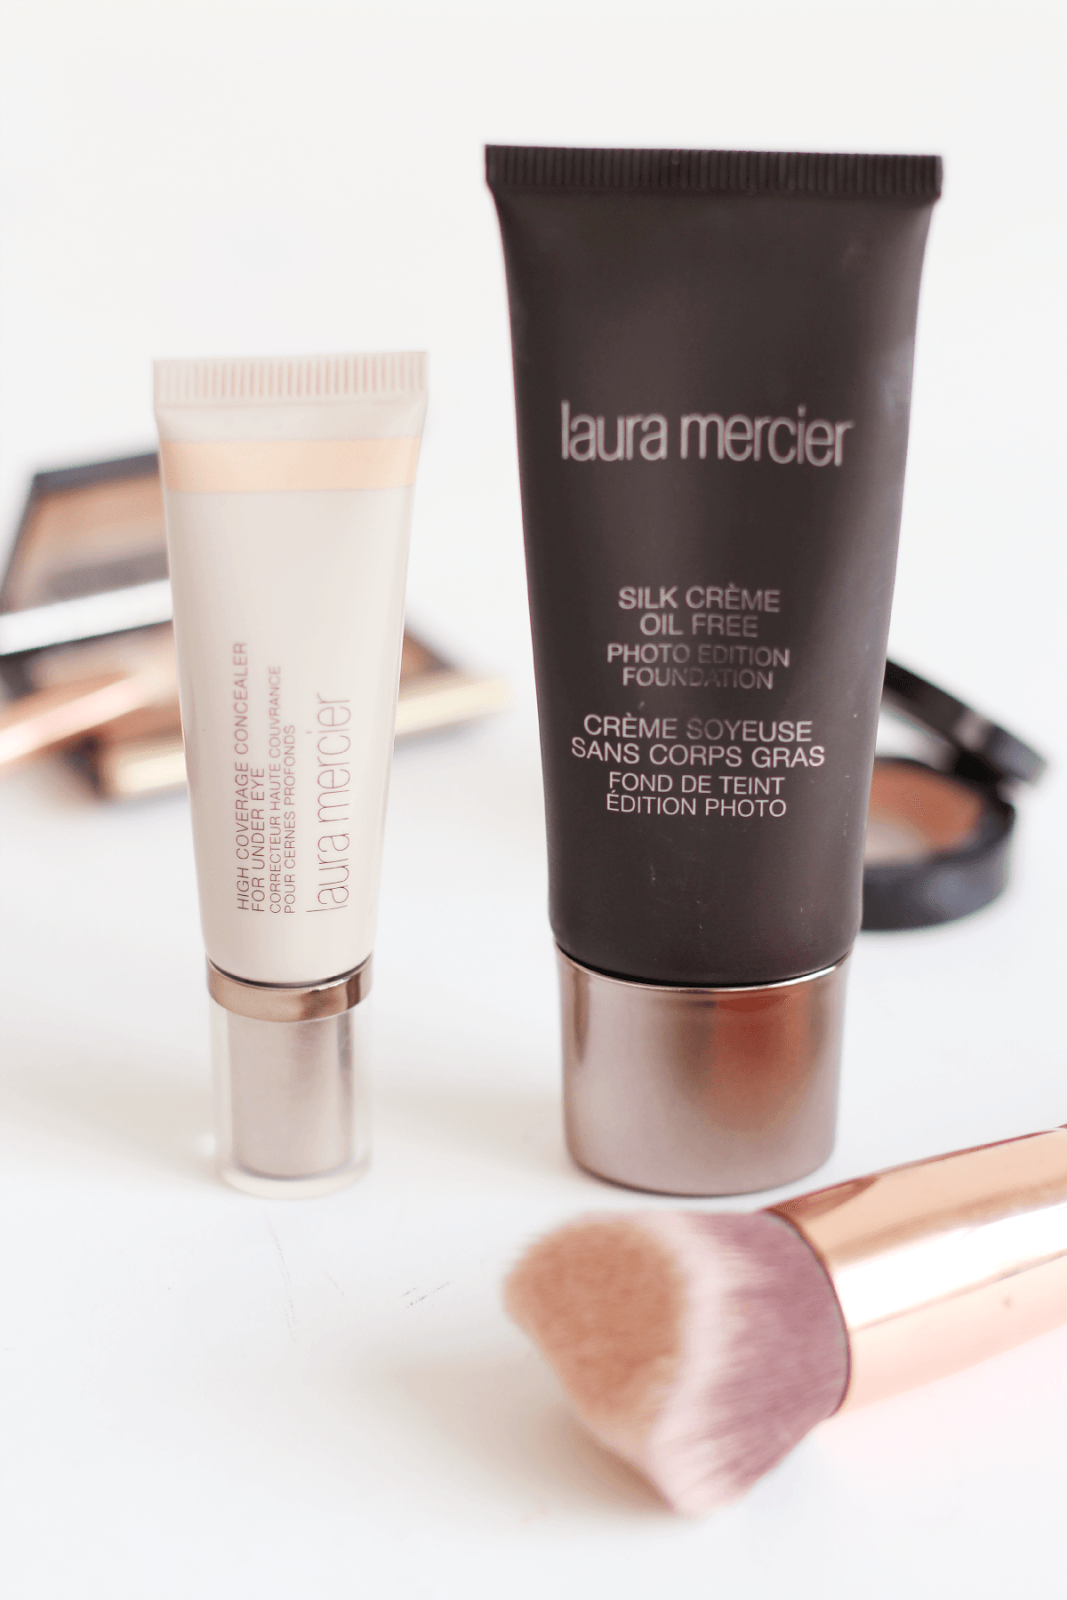 Laura Mercier Silk Creme Oil Free Photo Edition Foundation and High Coverage Concealer review